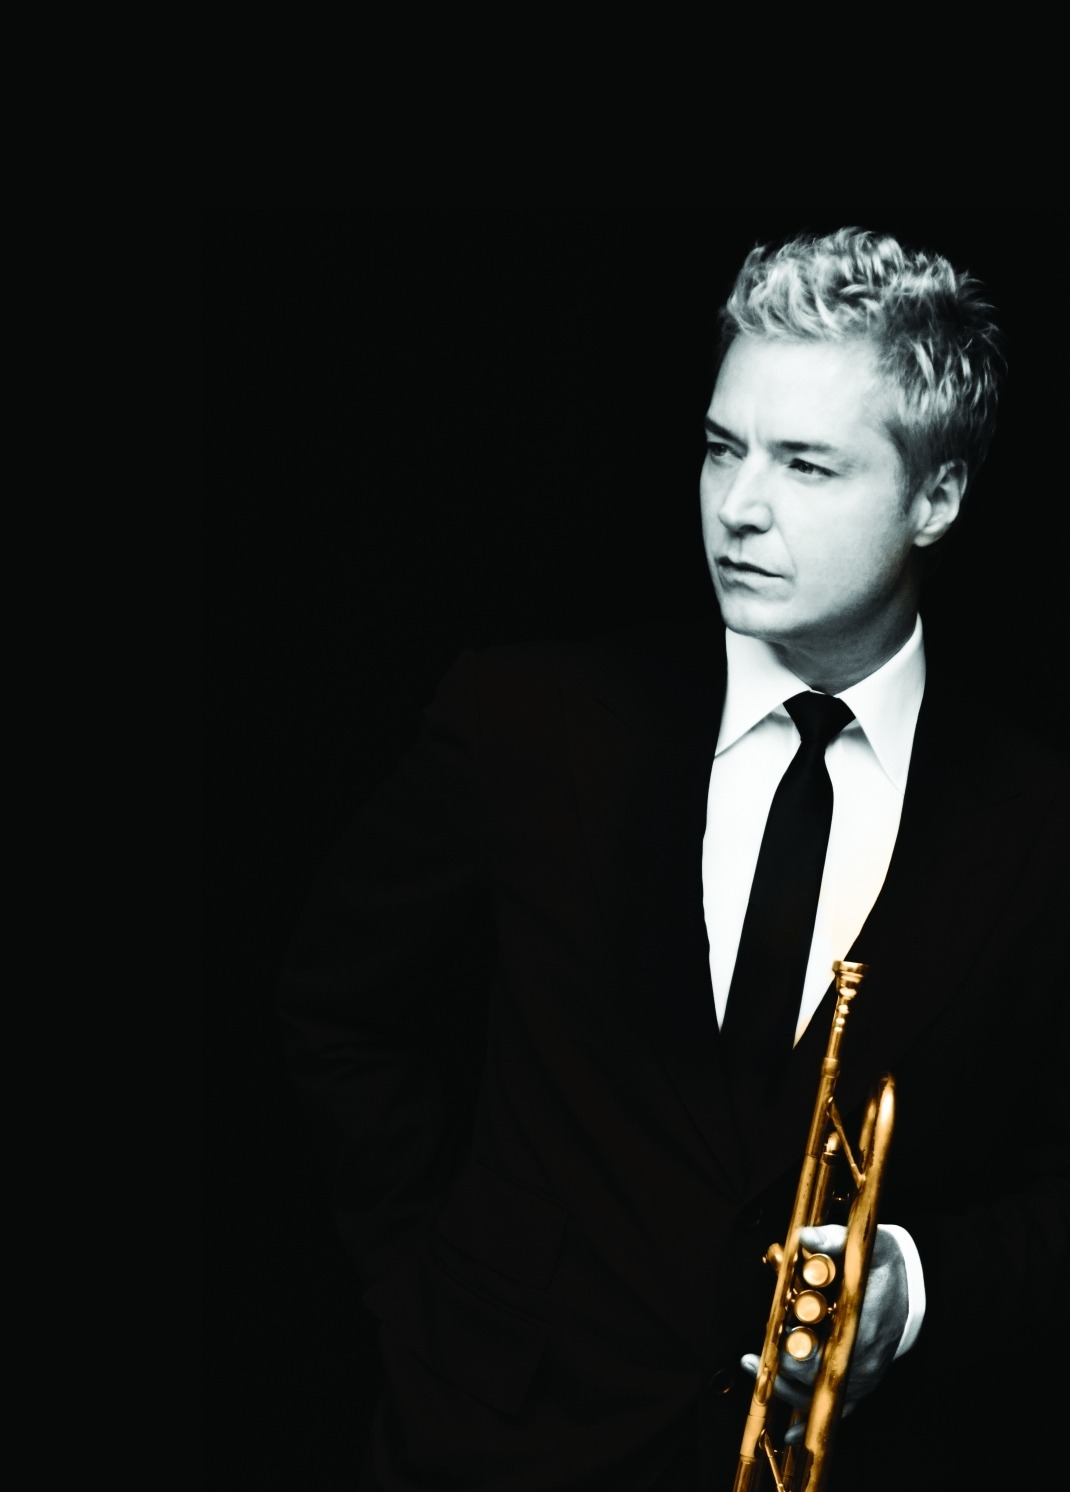 Black and white image of trumpet player Chris Botti wearing a suit and tie.